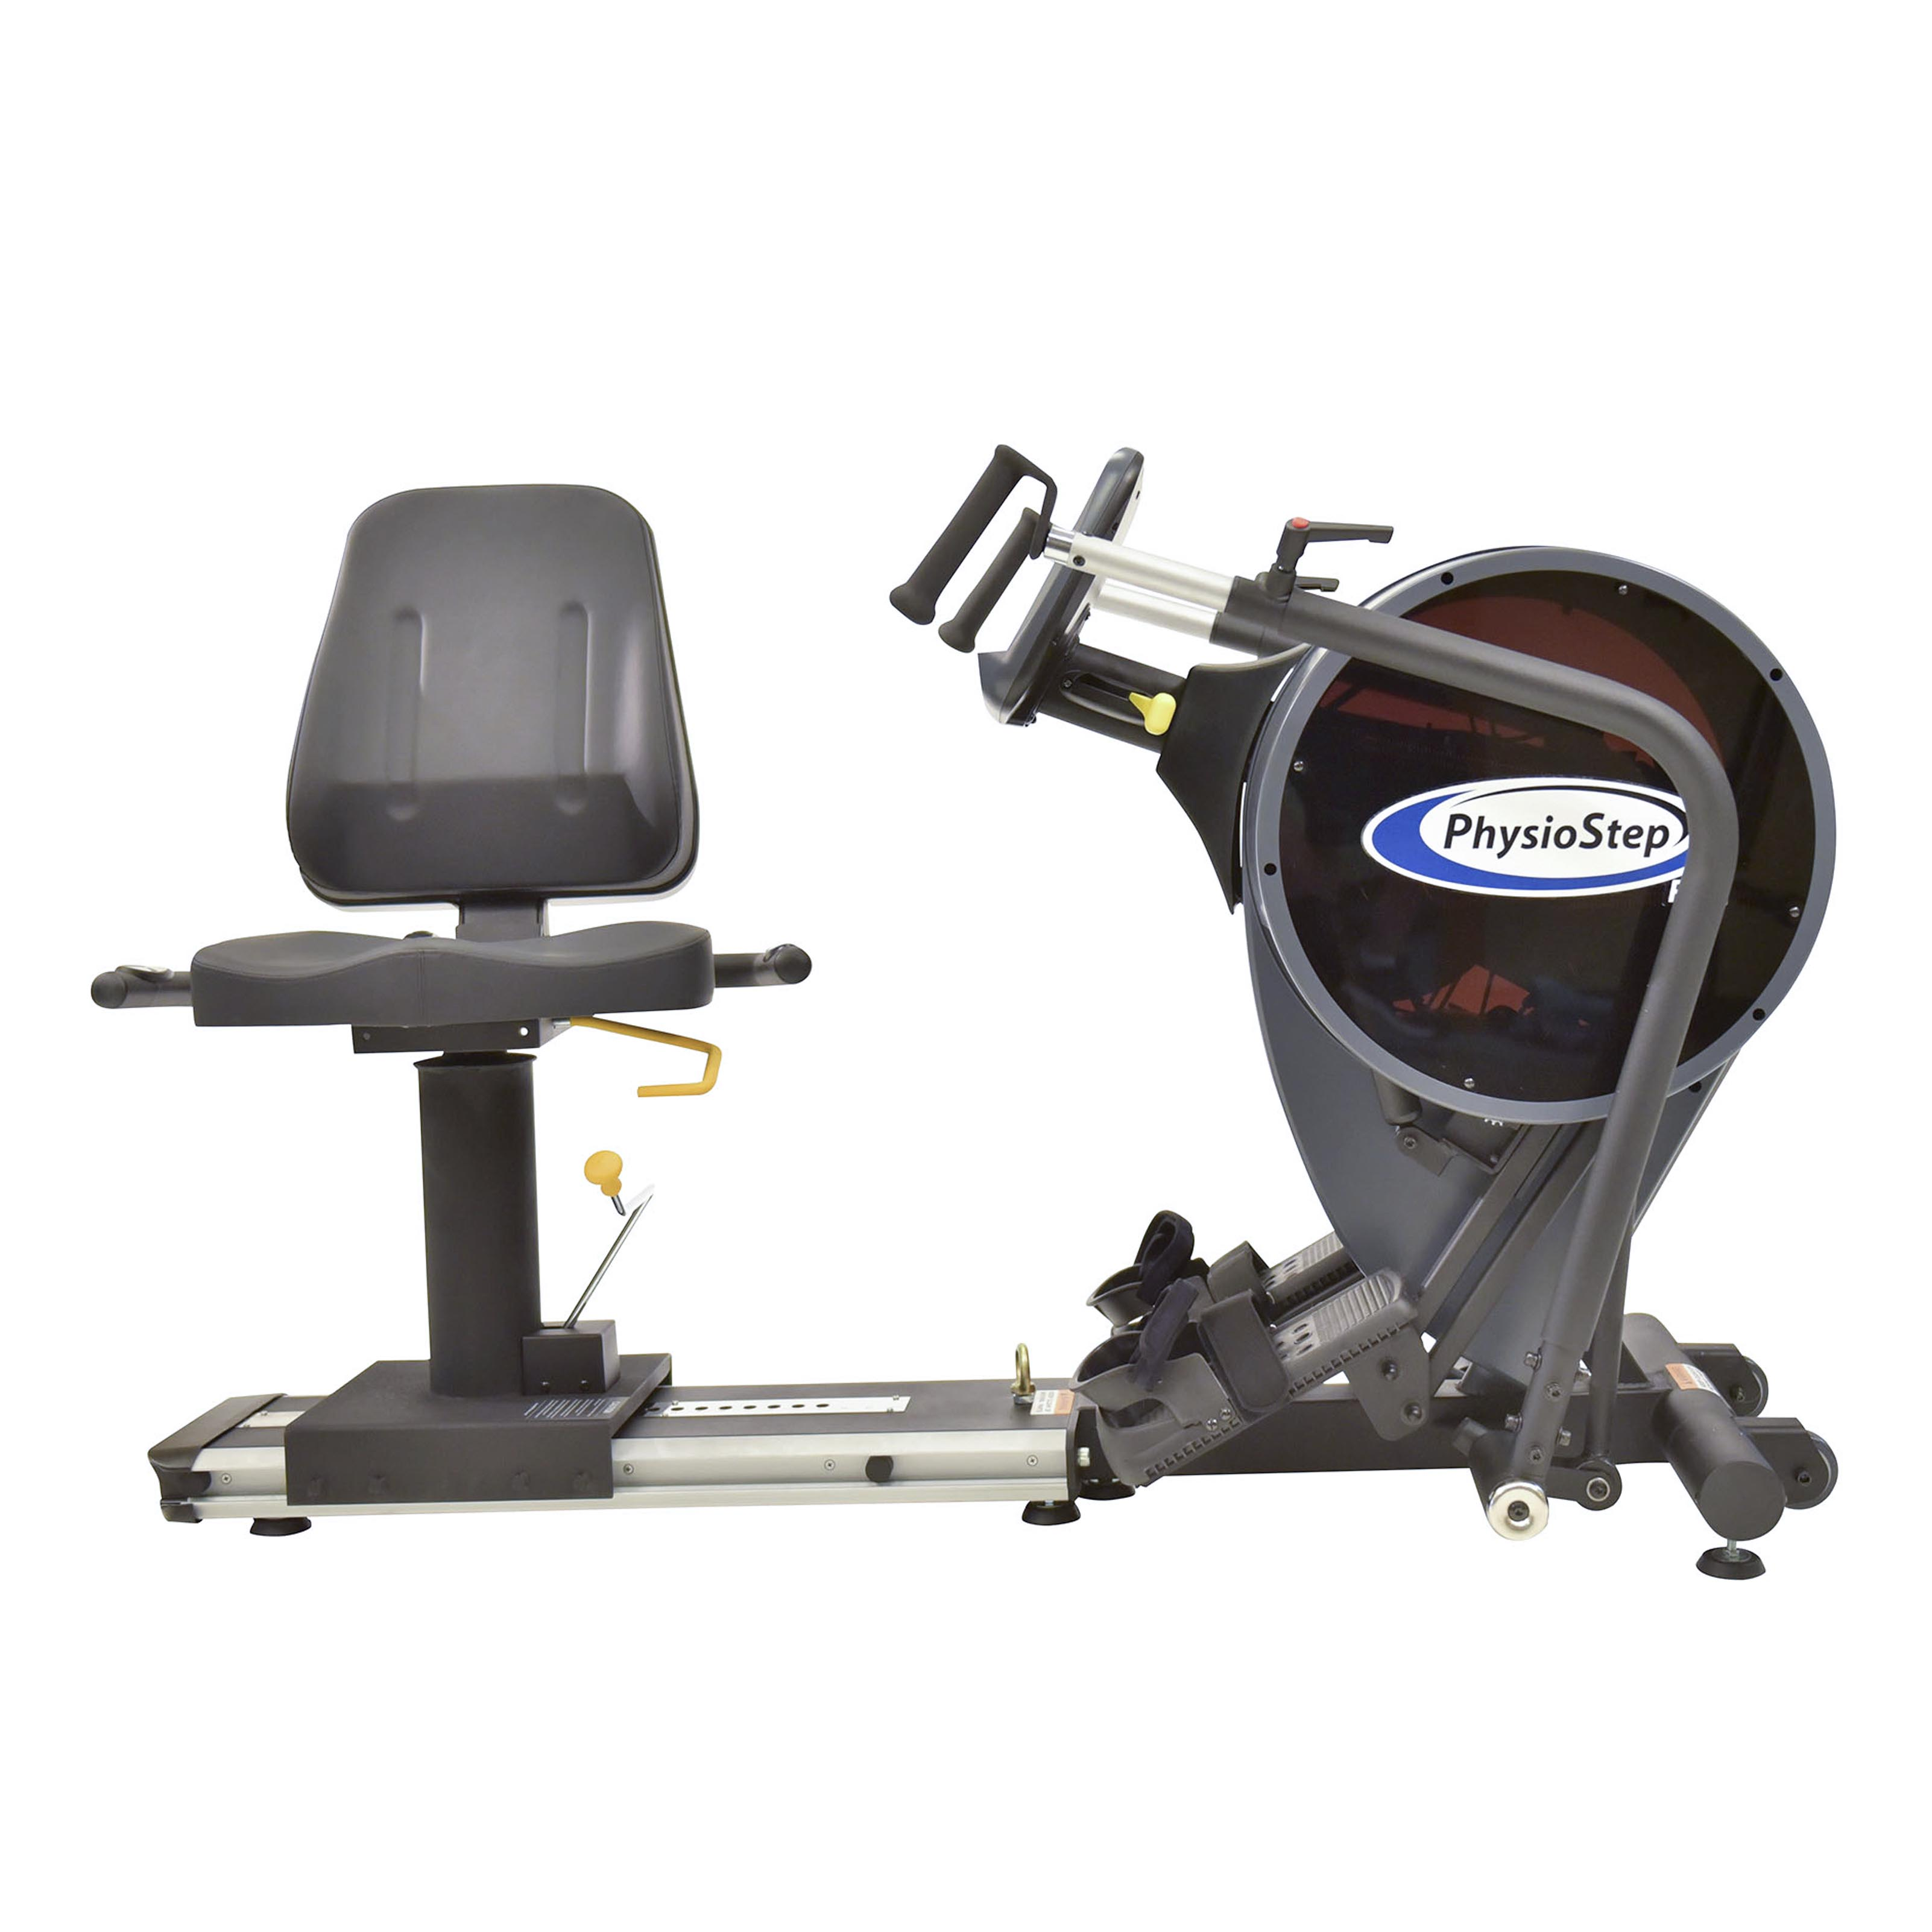 PhysioStep PRO Recumbent Stepper